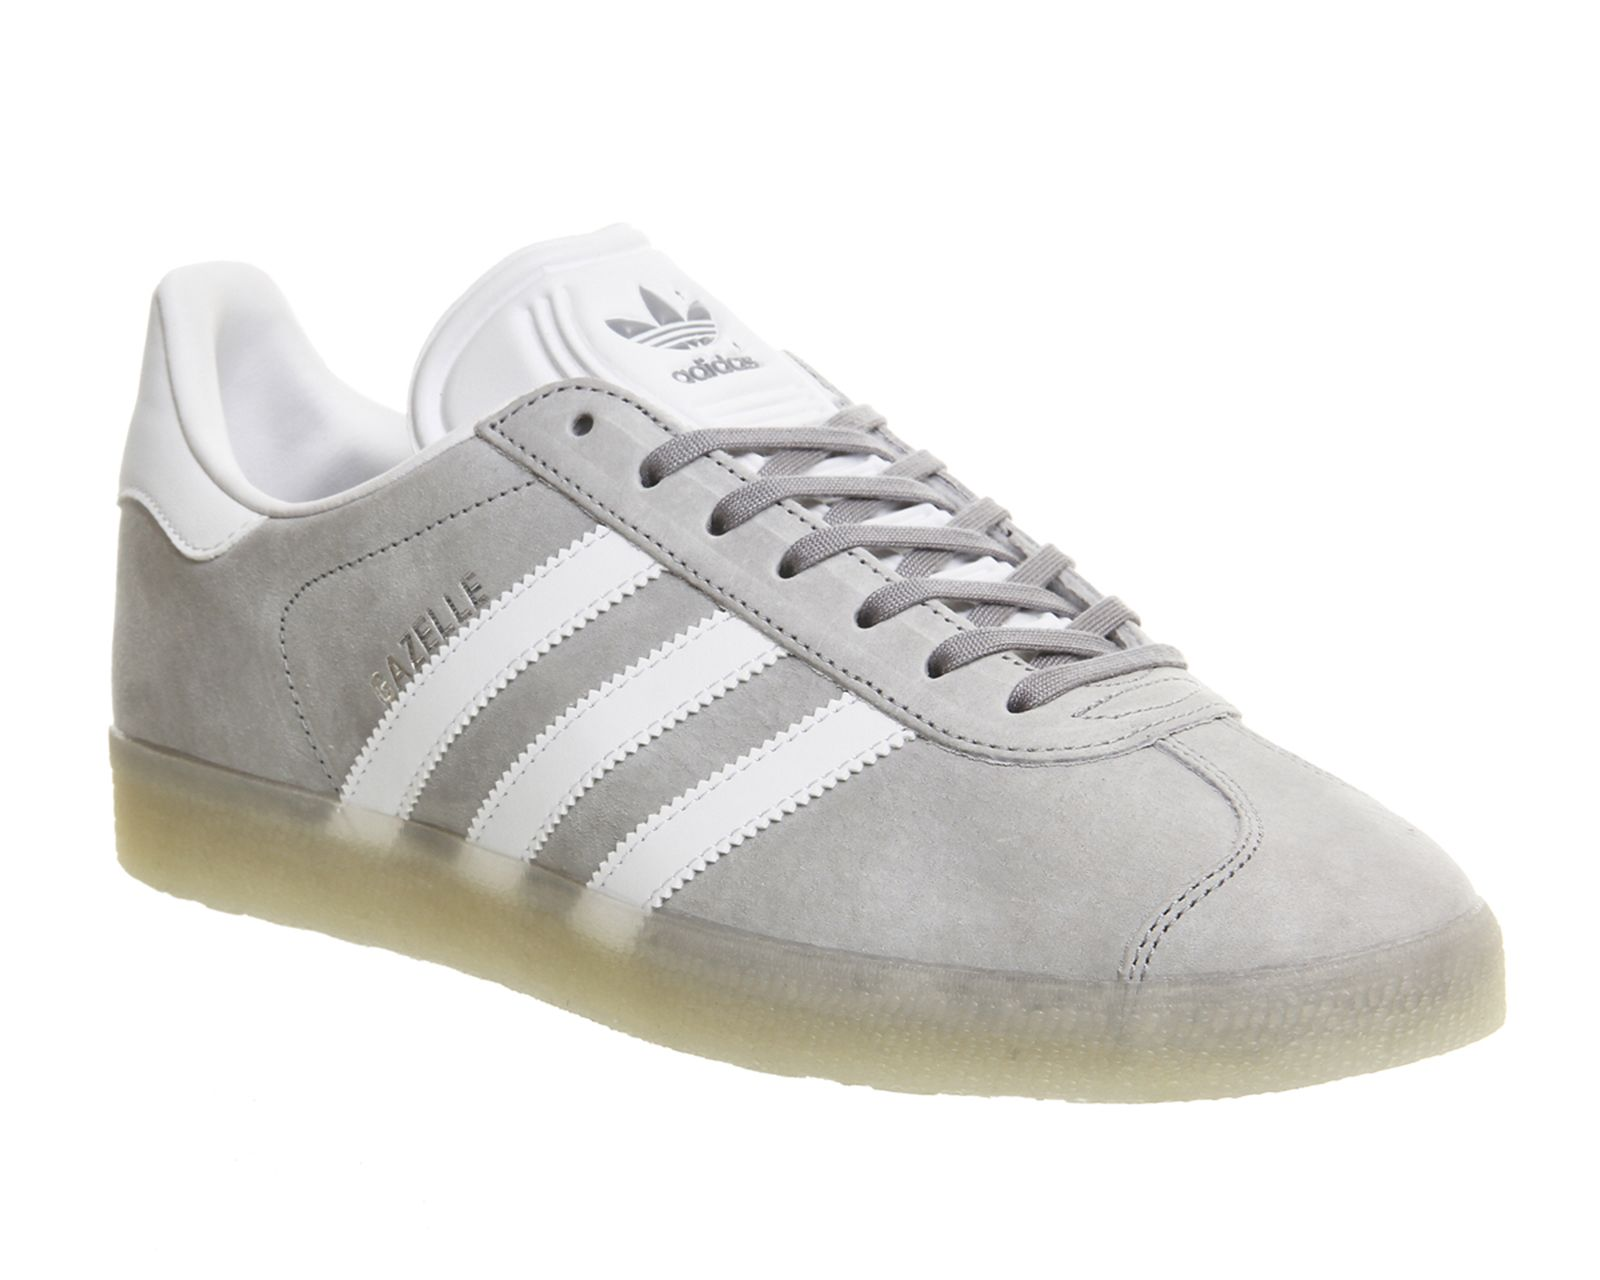 Adidas Gazelle Mid Grey White Ice - His trainers